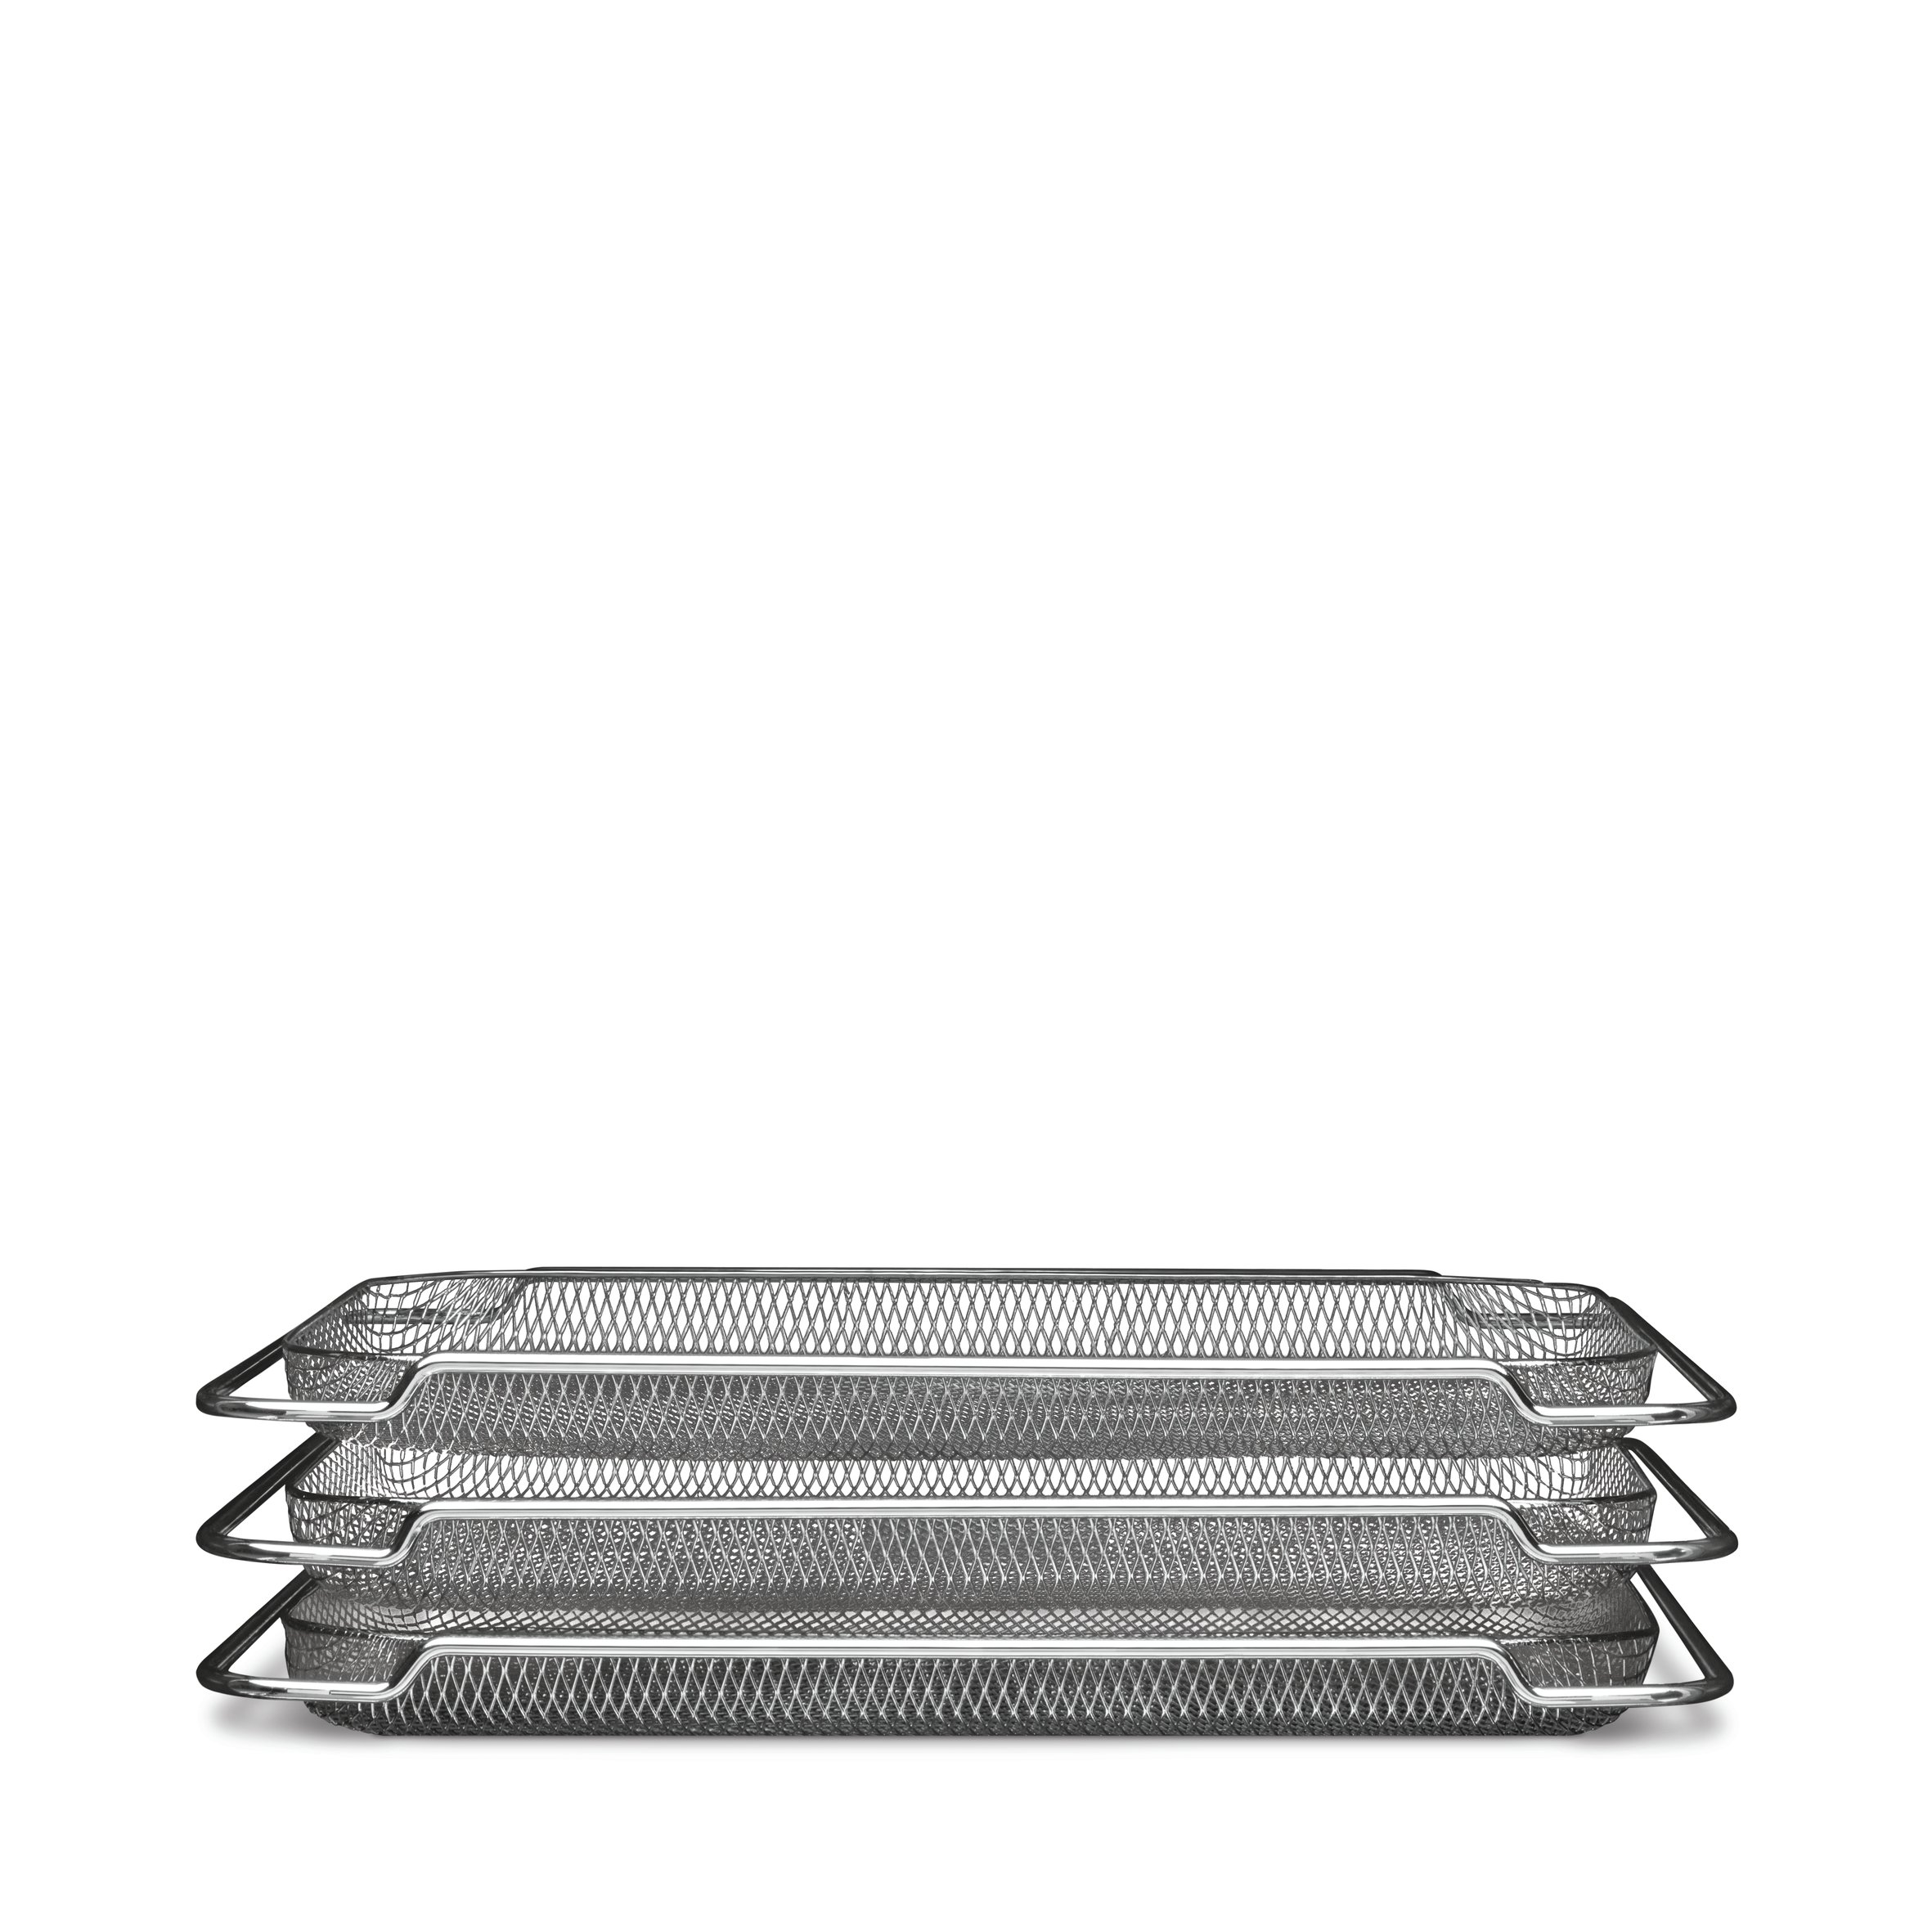 Cheap Magnetic Mesh Baskets Find Magnetic Mesh Baskets